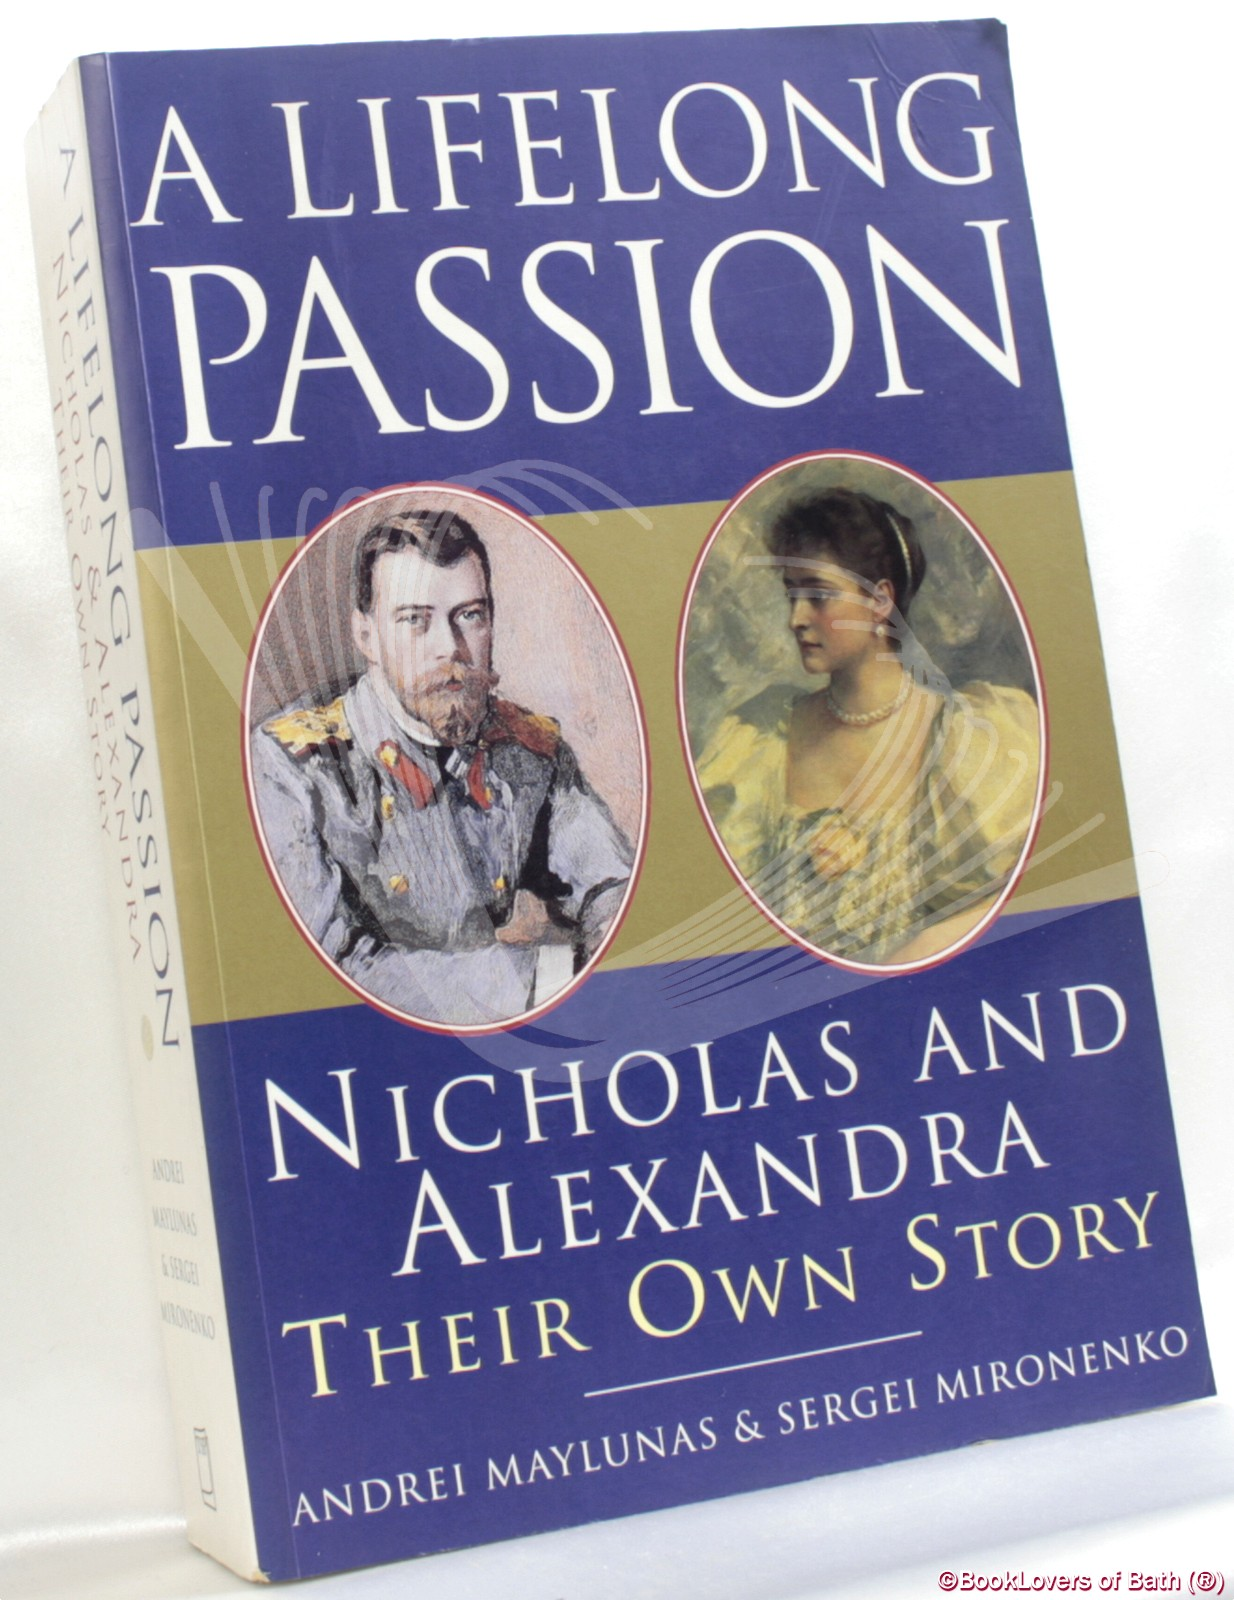 A Lifelong Passion: Nicholas and Alexandra: Their Own Story - Edited by Andrei Maylunas & Sergei Mironenko